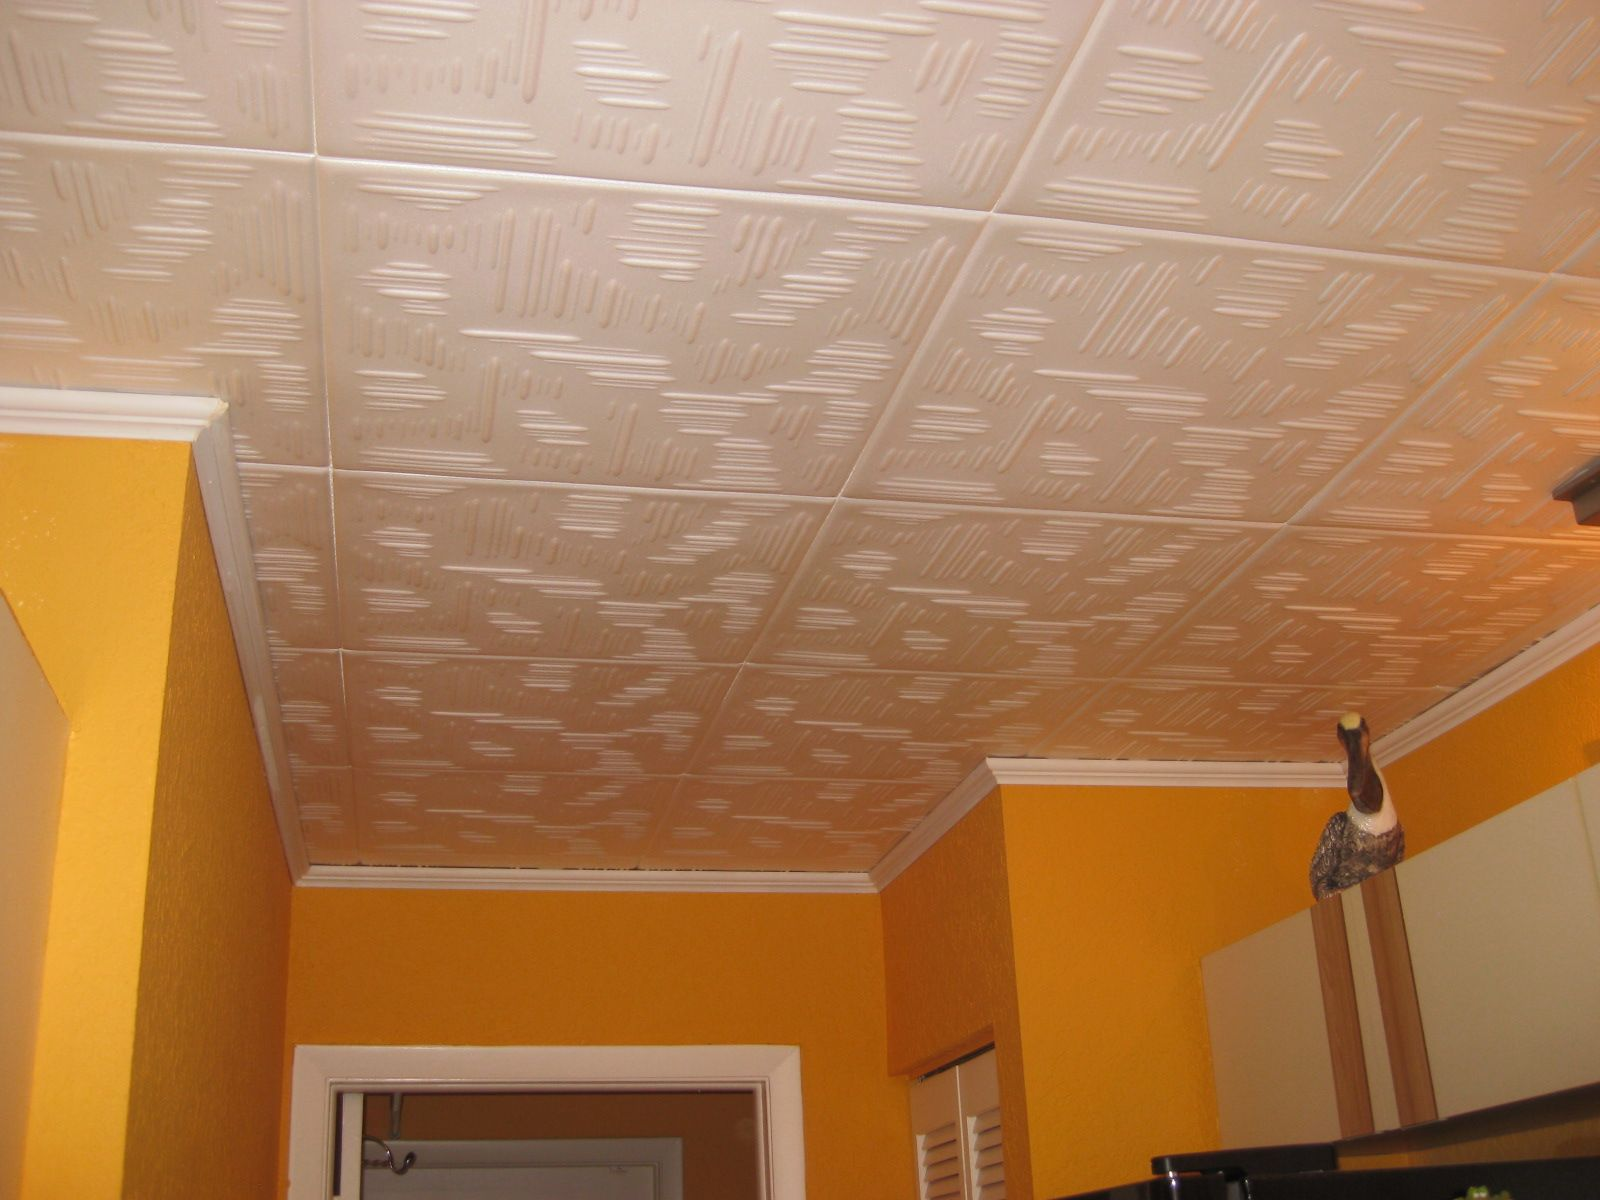 How to paint styrofoam ceiling tiles httpltgenthow how to paint styrofoam ceiling tiles httpltgent doublecrazyfo Image collections